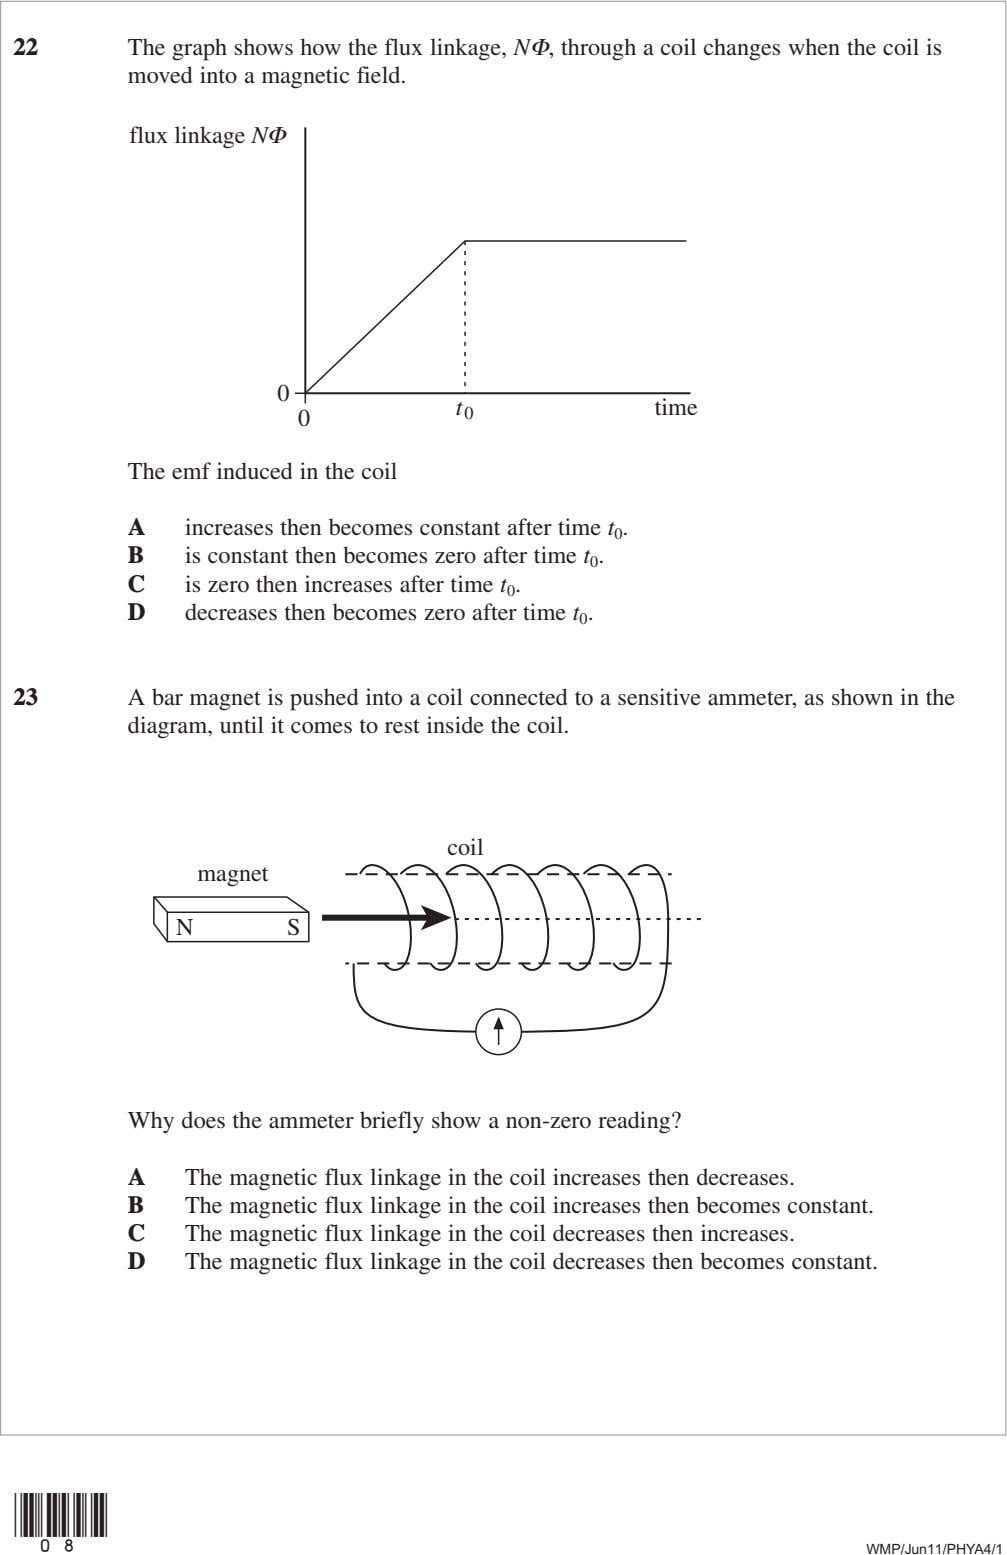 22 The graph shows how the flux linkage, NΦ, through a coil changes when the